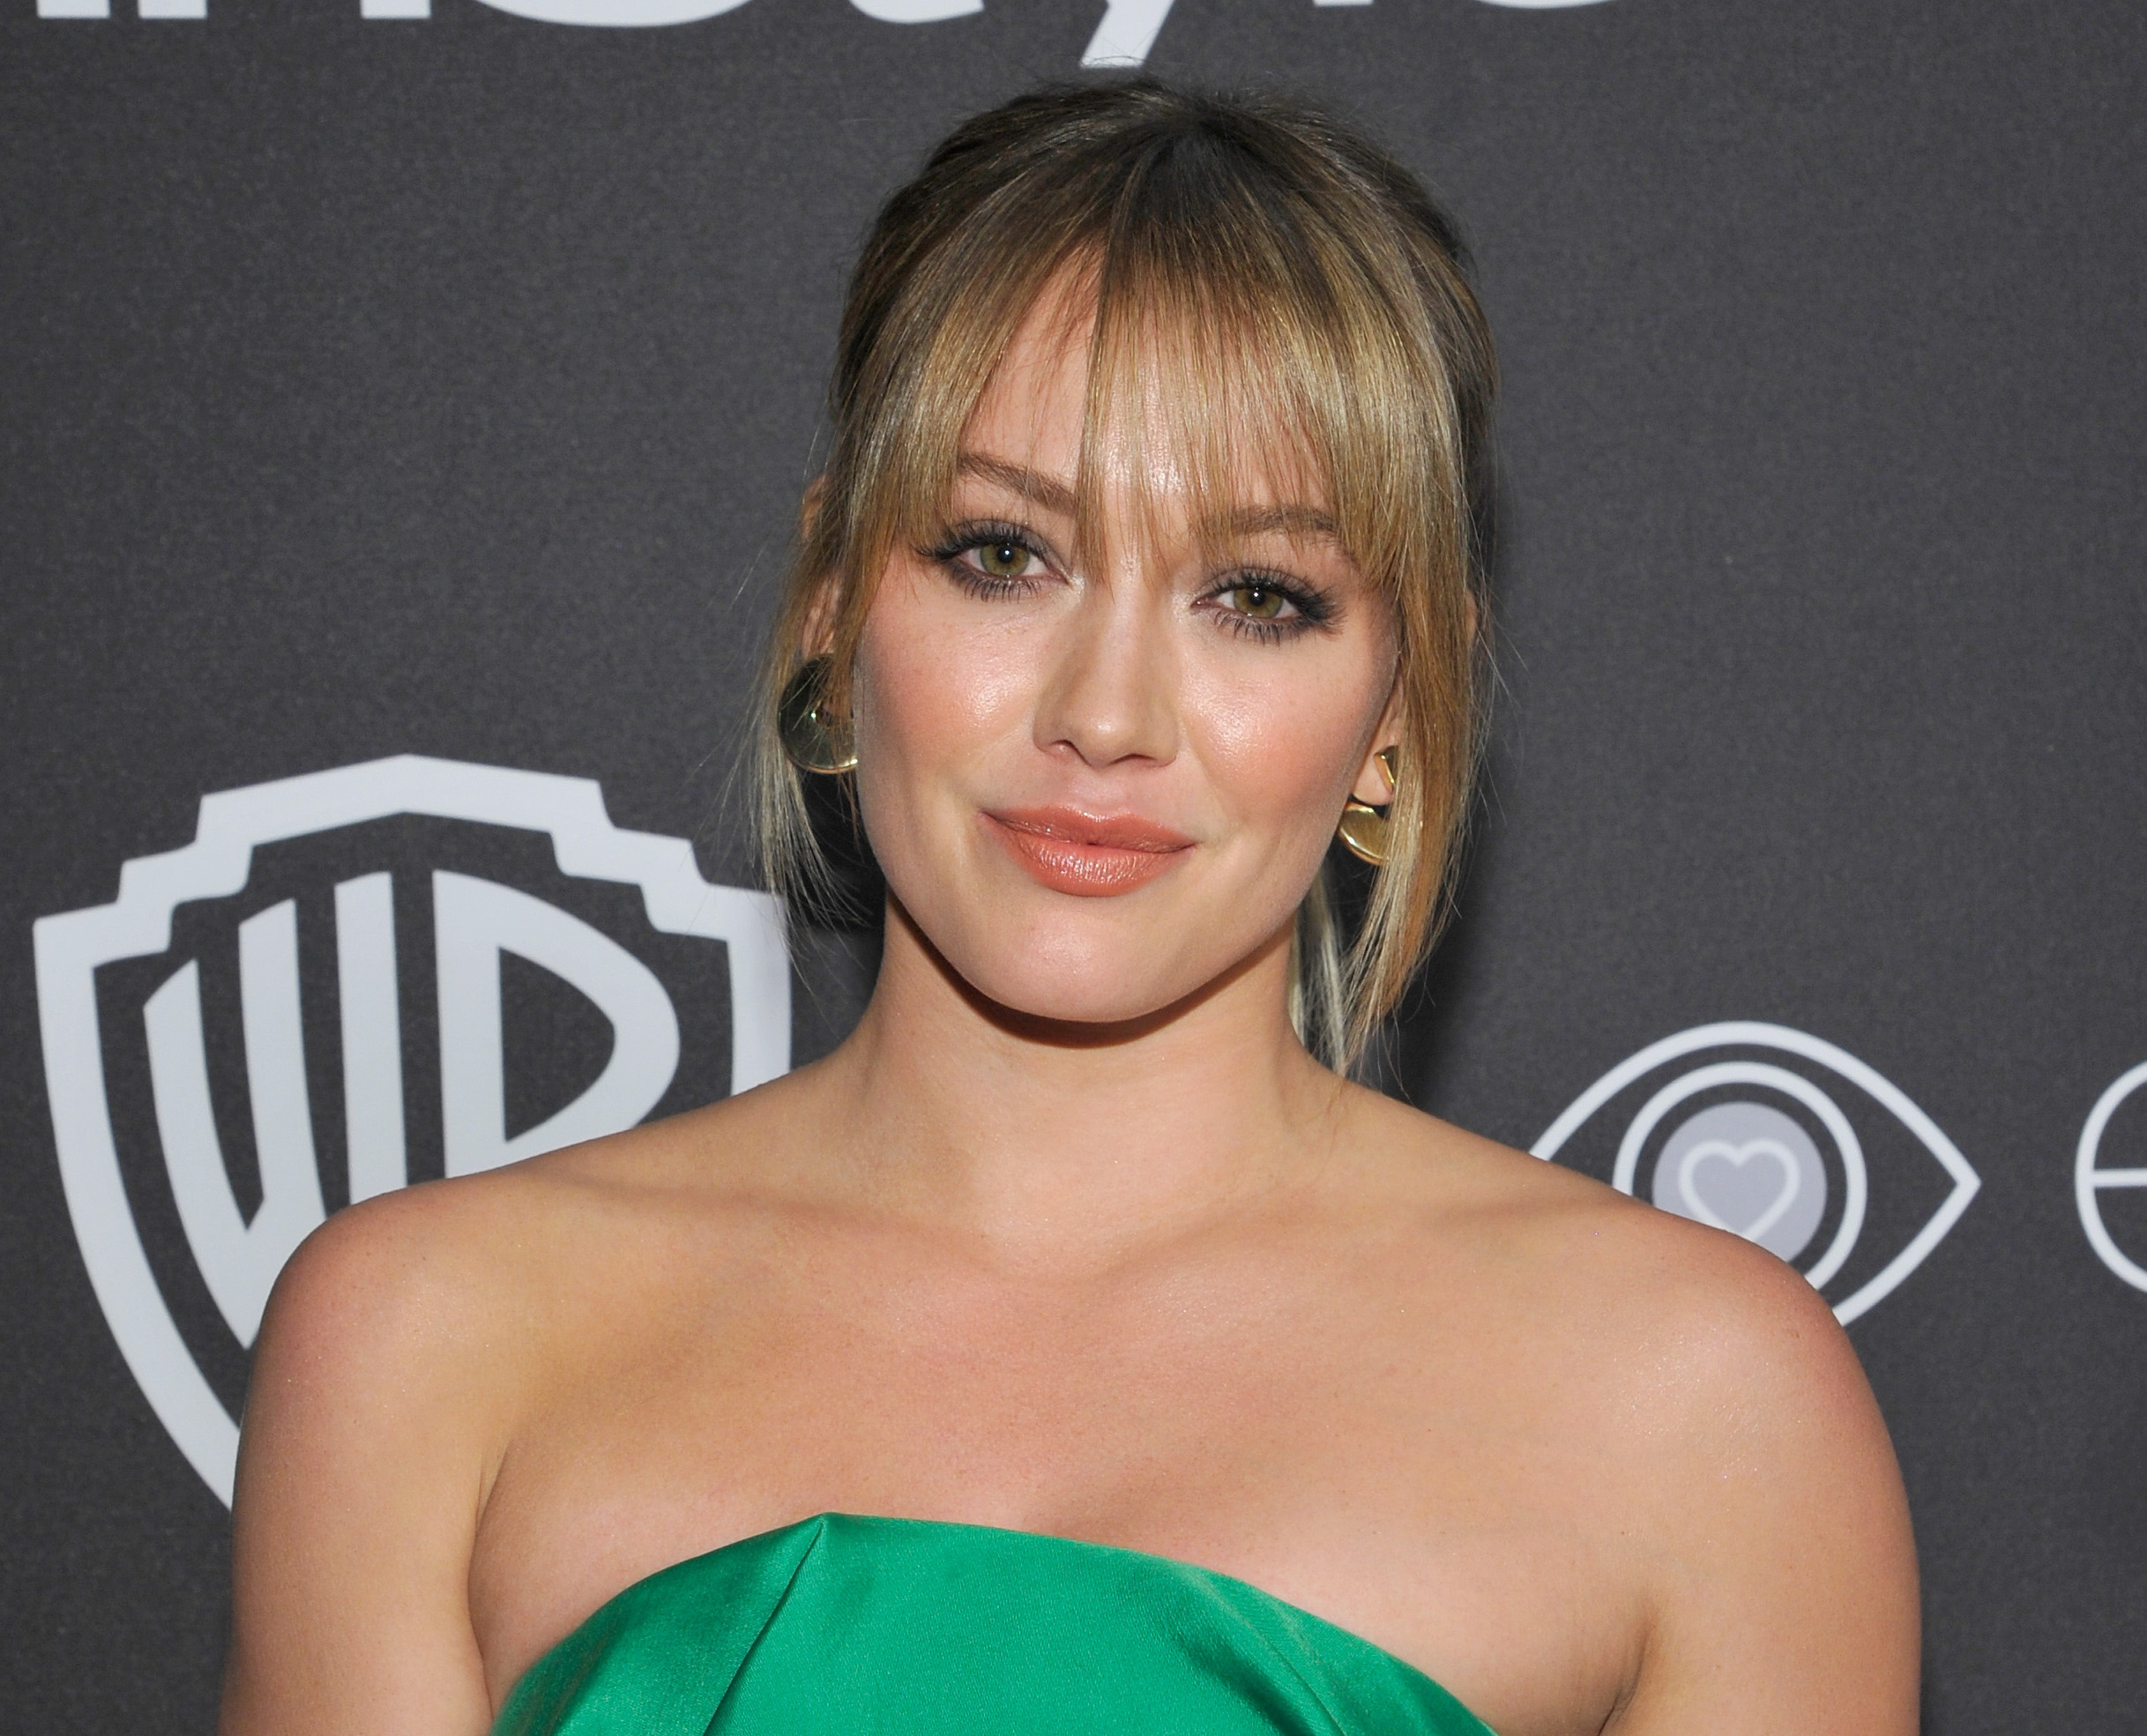 Hilary Duff has the perfect post-workout style and this outfit is proof